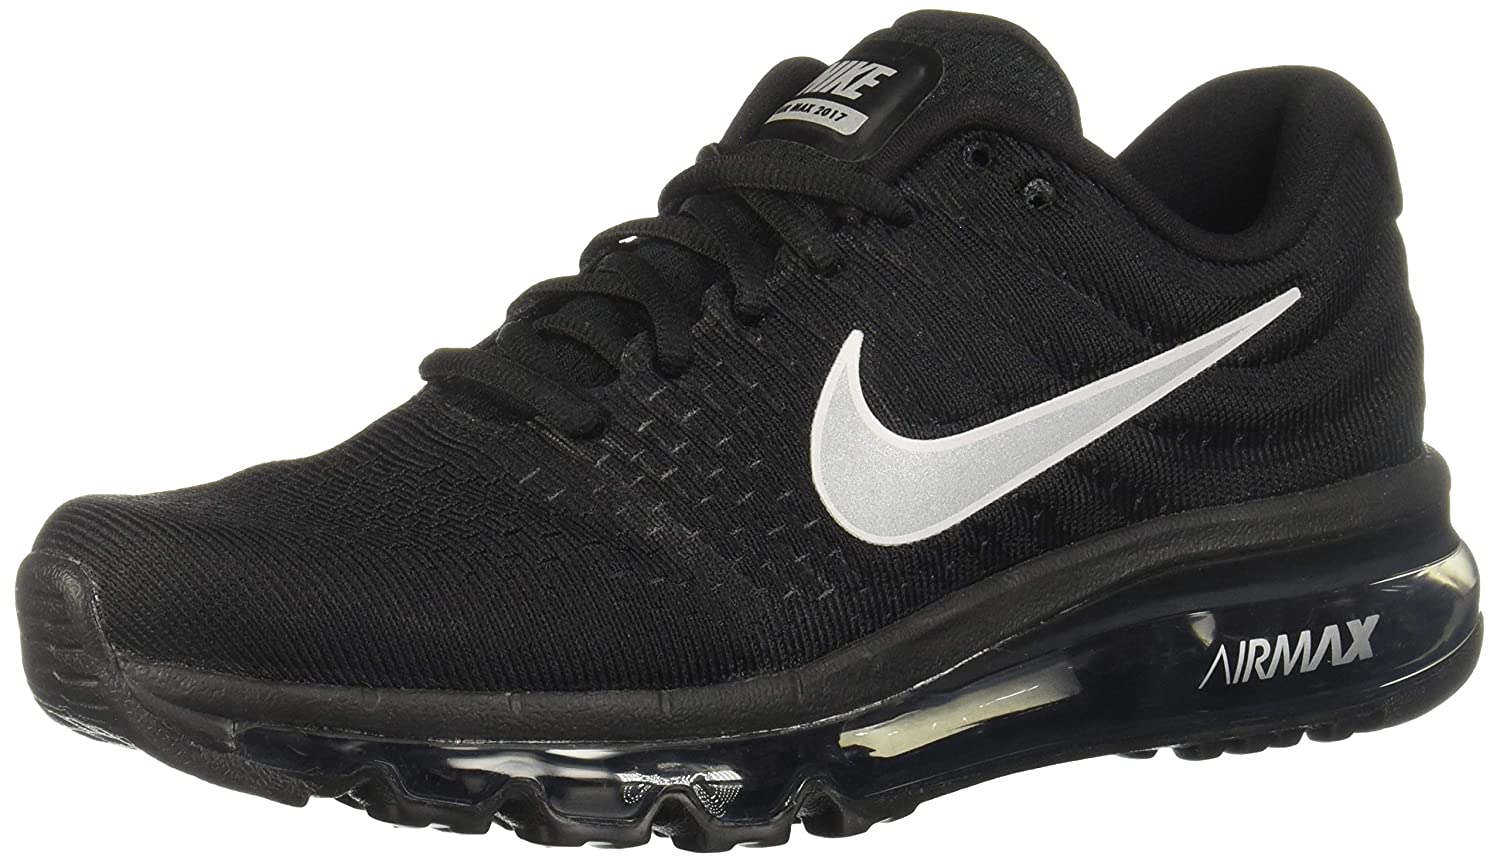 WMNS NIKE AIR MAX 2017 BLACKWHITE ANTHRACITE women Kie Ney AMAX 2017